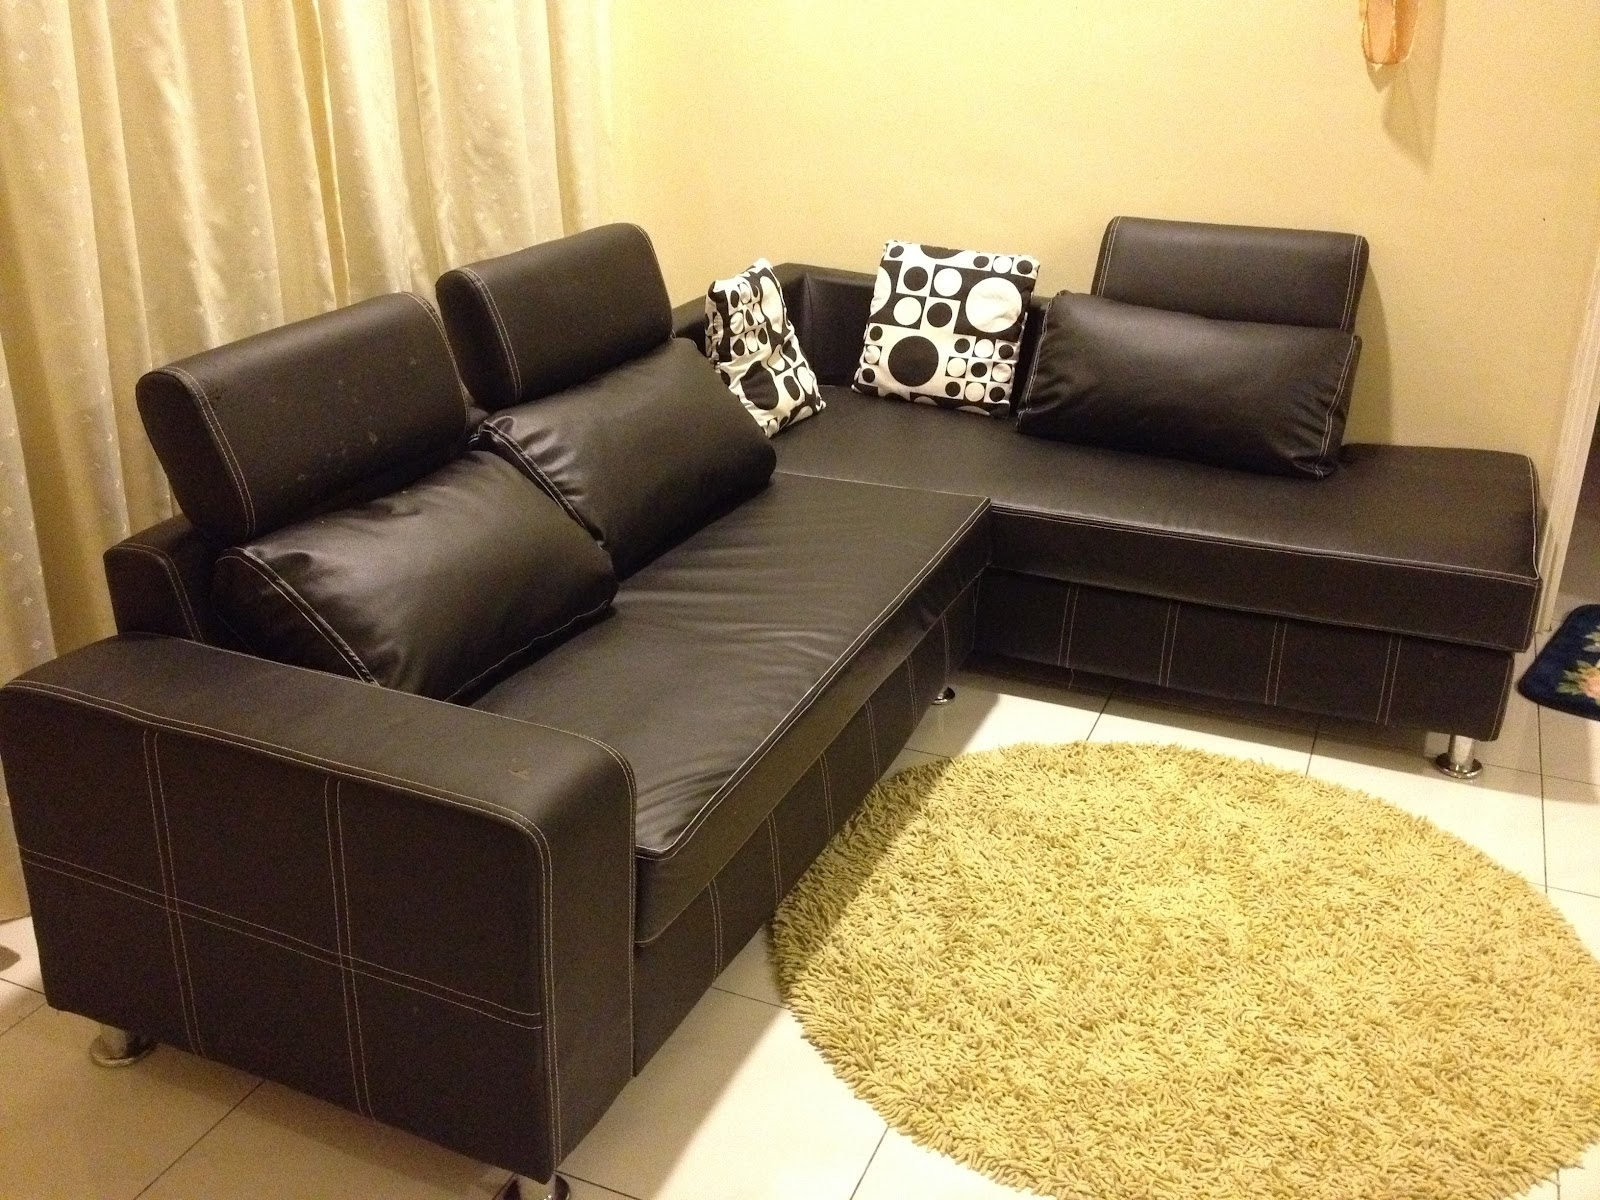 The Most Popular Leather Sofa For Sale Philippines Within Sofa With Regard To Sectional Sofas In Philippines (View 3 of 10)